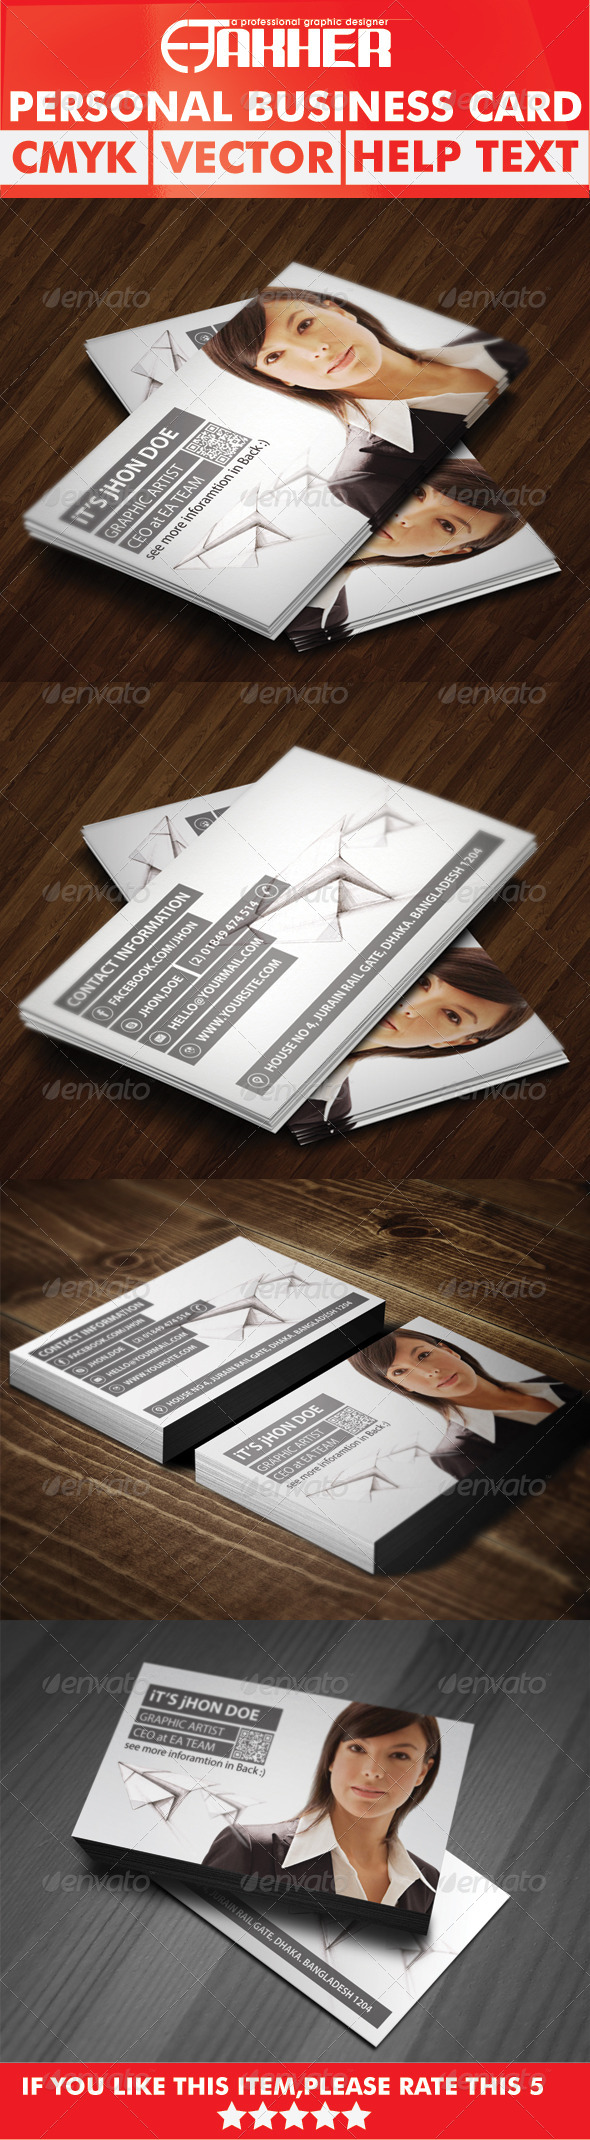 GraphicRiver Personal Business Card 5627381